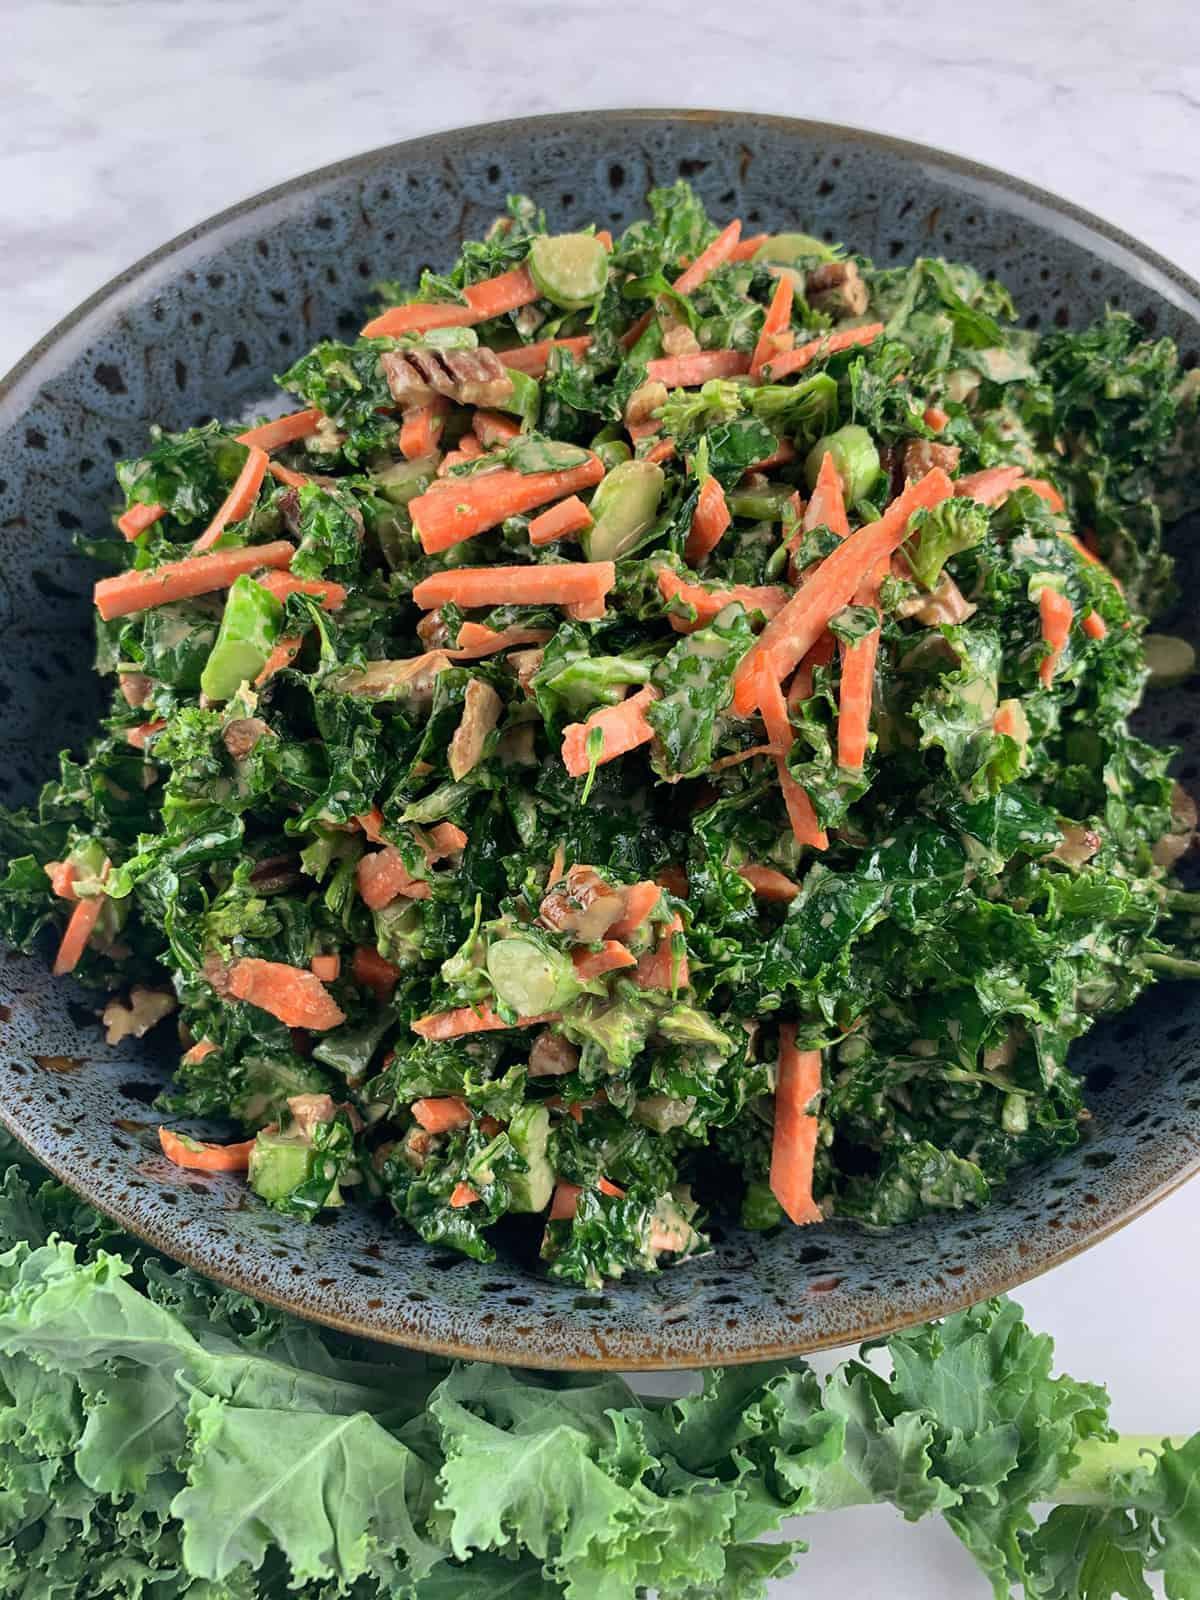 KALE AND BROCCOLI SALAD IN PORTRAIT